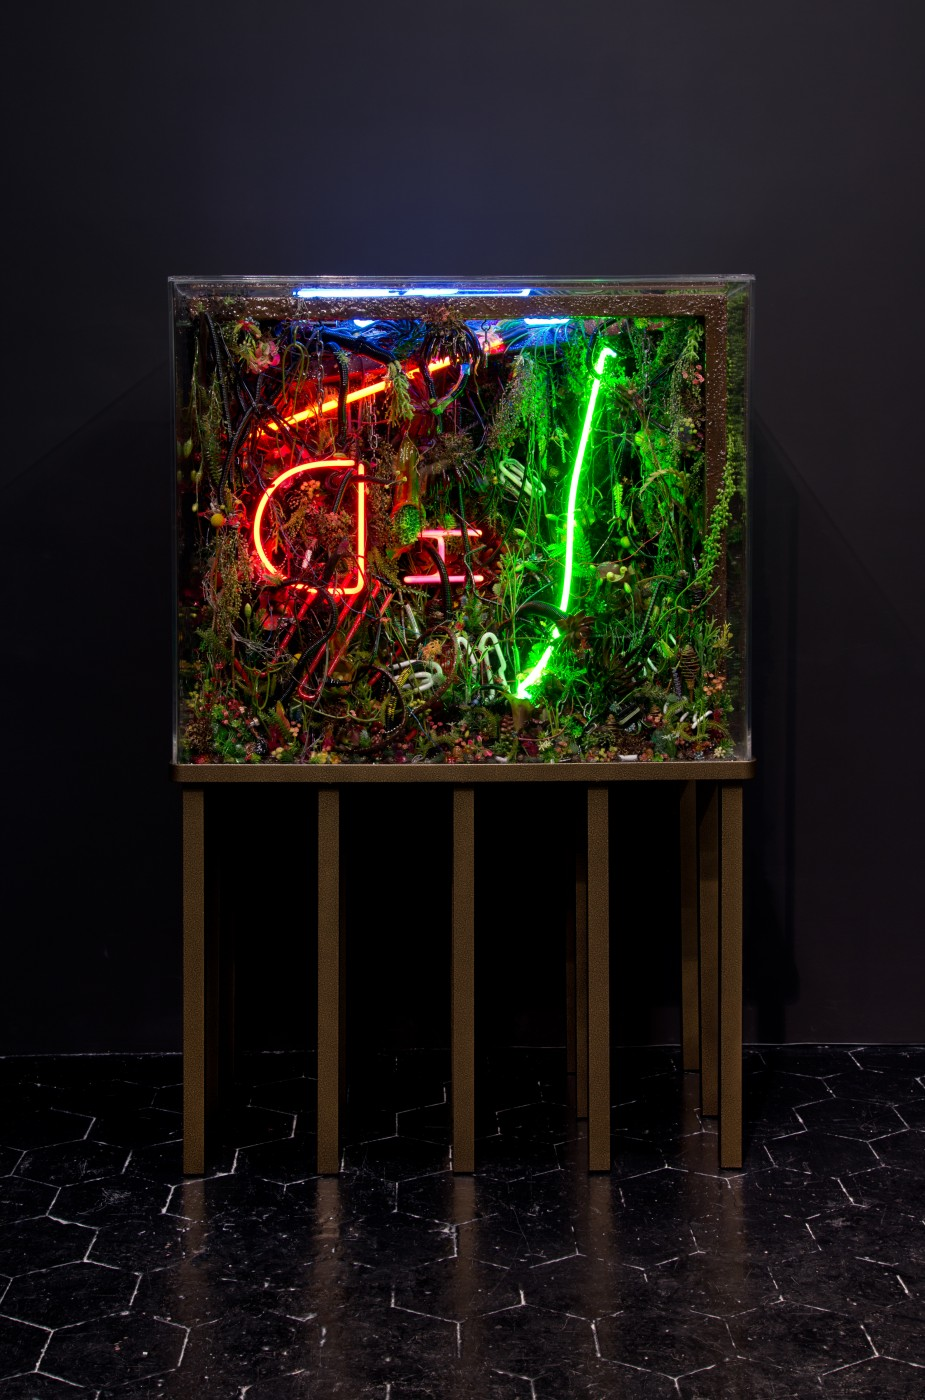 NATURE THEATER OF VIOLENT SUCCESSION  The Extinction of Neon 2</I>, 2015 Acrylic terrarium, modeled landscape, used and broken neon signs, plastic flora, gallows structure, automotive detritus, steel chains, GTO wires, found objects, insect and animal matter, polymer resin, custom aluminum stand  167.6 x 106.7 x 61 cm / 66 x 42 x 24 in - High Art Gallery Paris